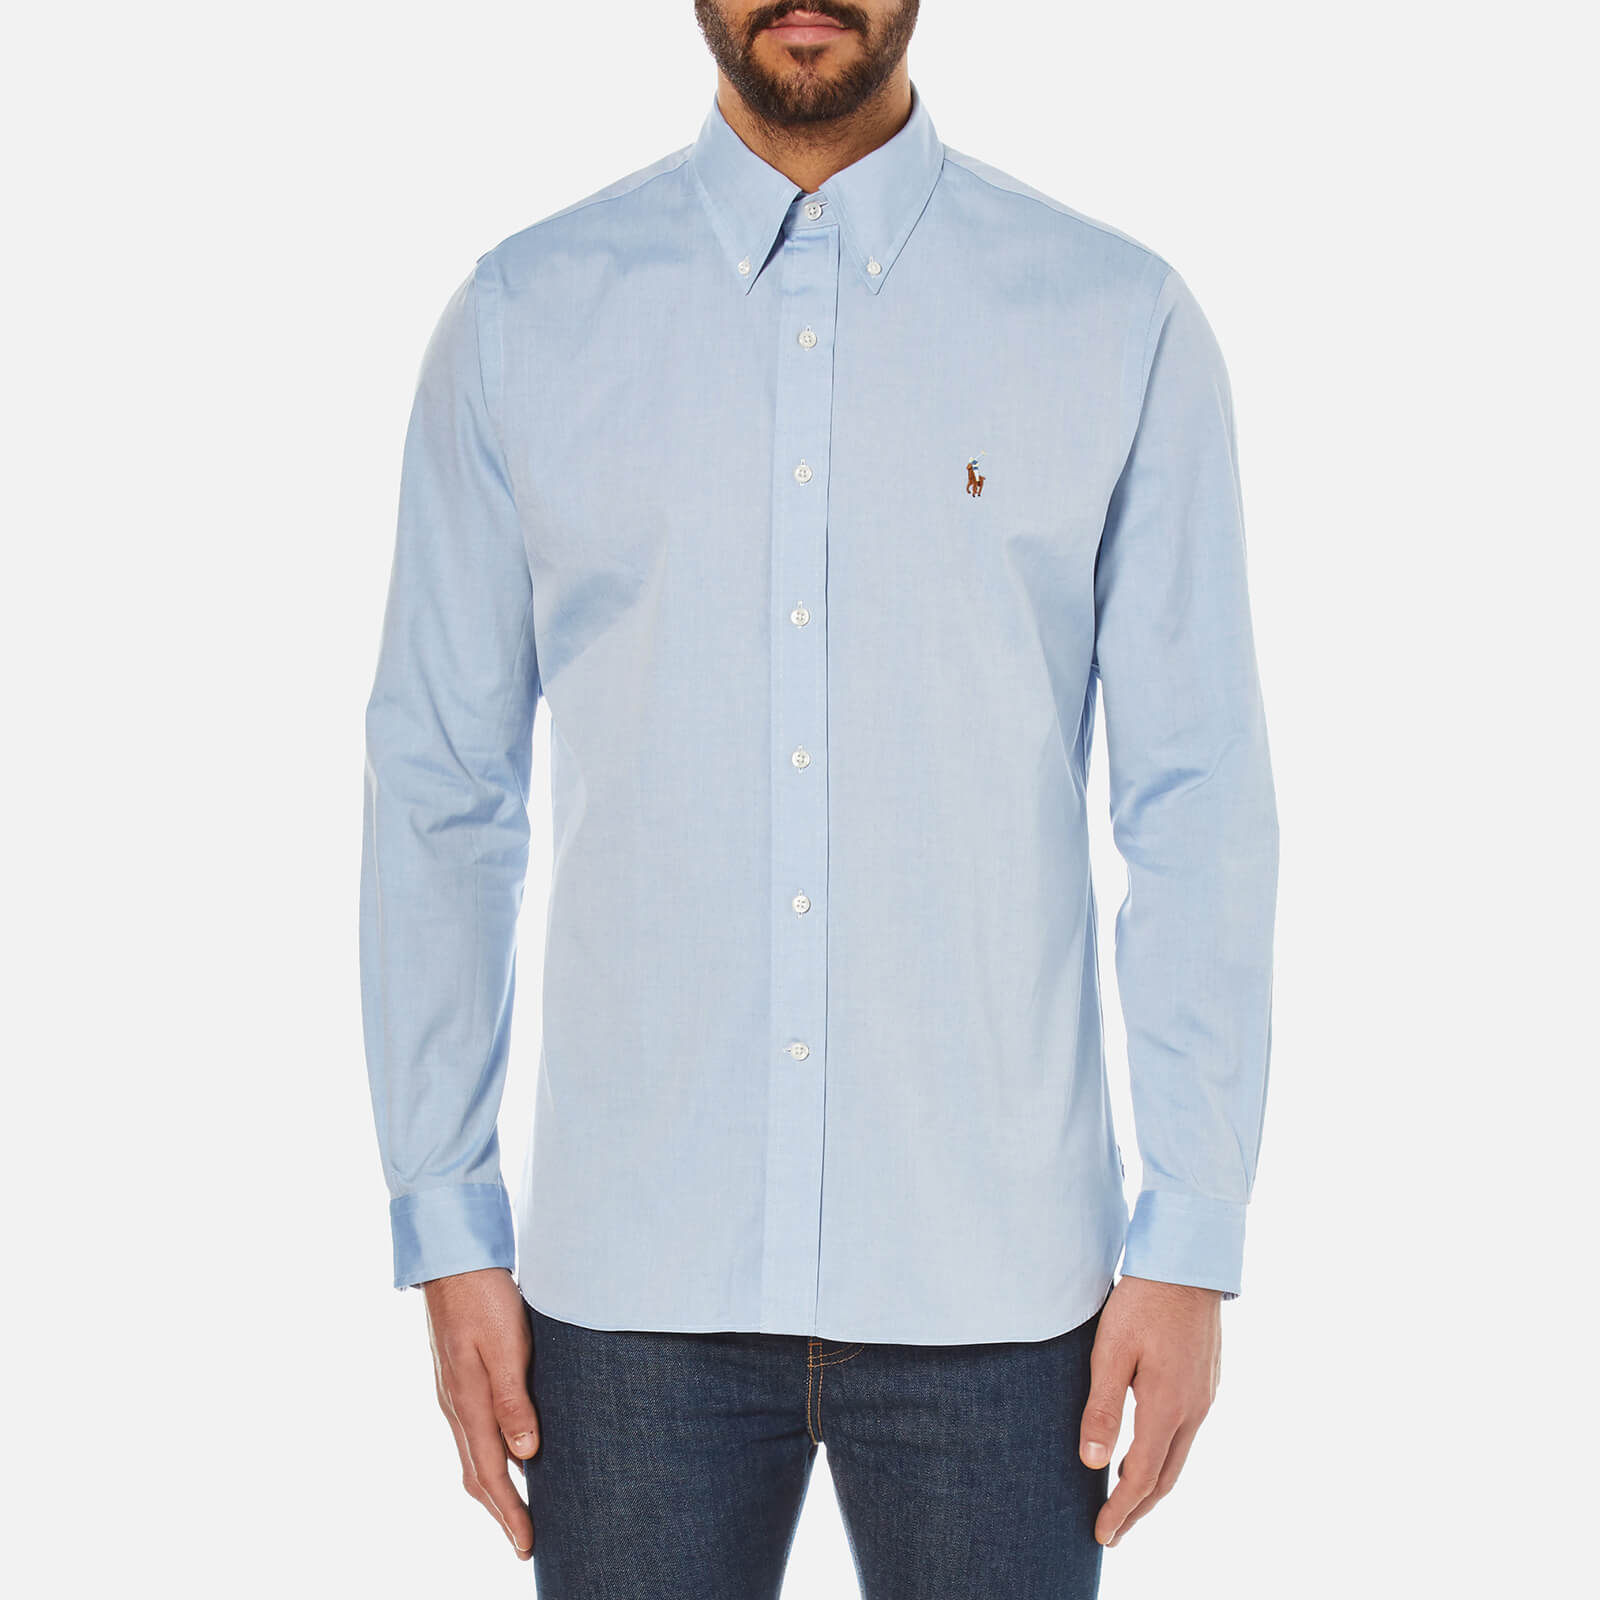 92d3744cf Polo Ralph Lauren Men s Custom Fit Button Down Pinpoint Oxford Shirt - Blue  - Free UK Delivery over £50